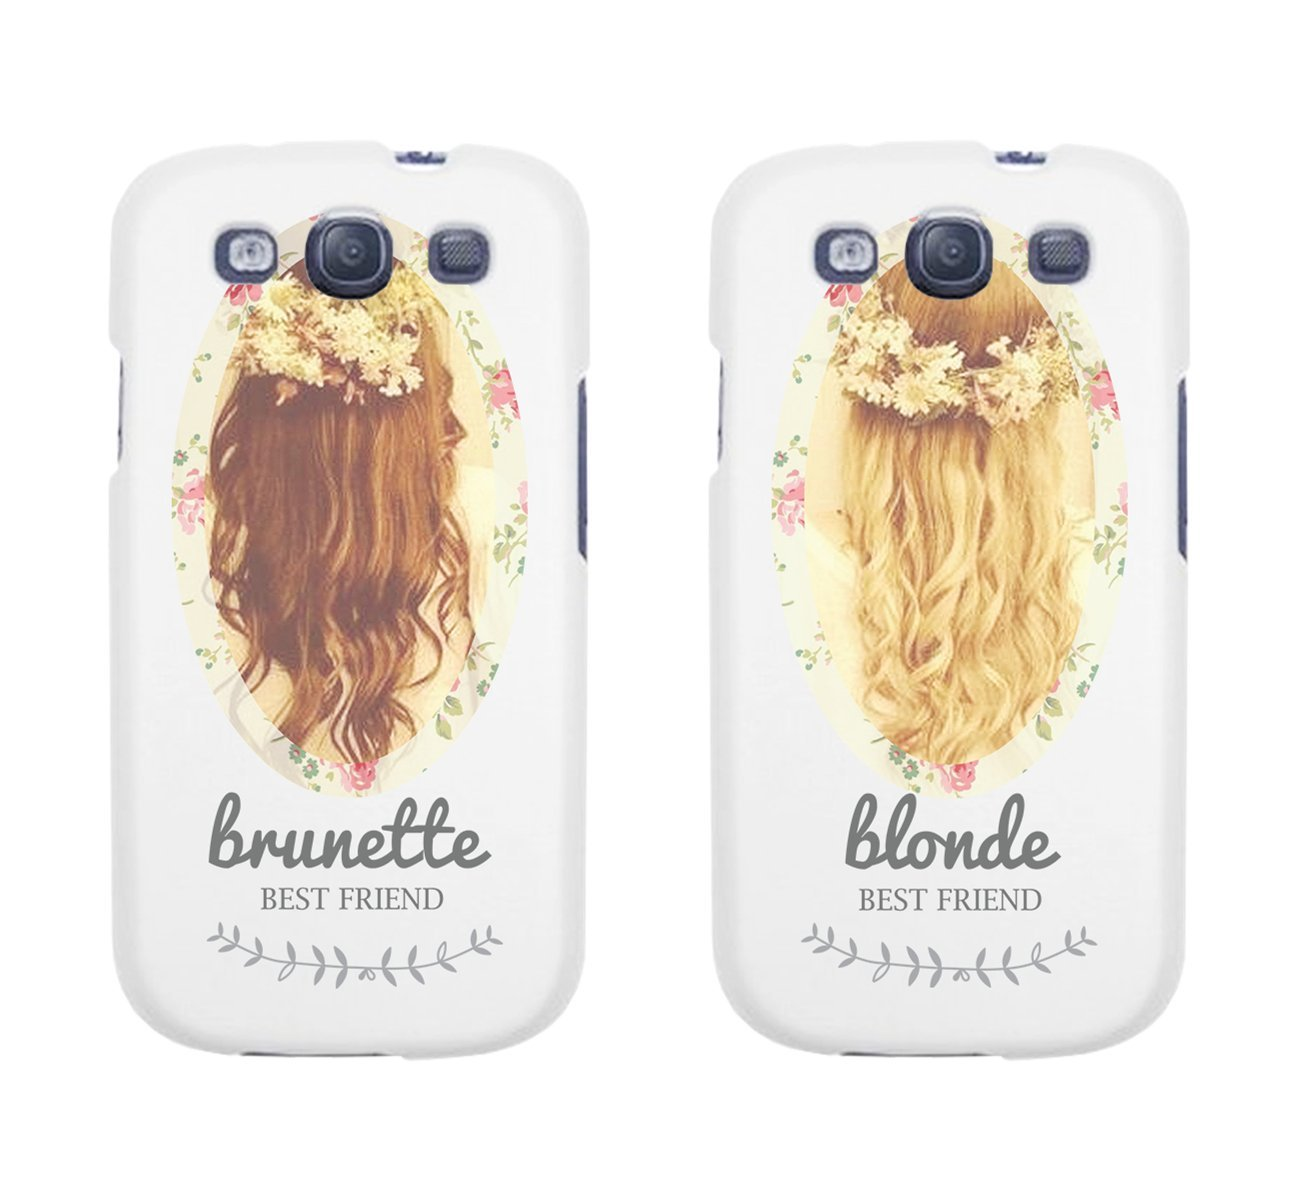 new styles 63f86 d7ac7 Amazon.com: Cute BFF Phone Cases - Brunette and Blonde Best Friends Phone  Covers for iphone 4, iphone 5, iphone 5C, iphone 6, iphone 6 plus, Galaxy  ...